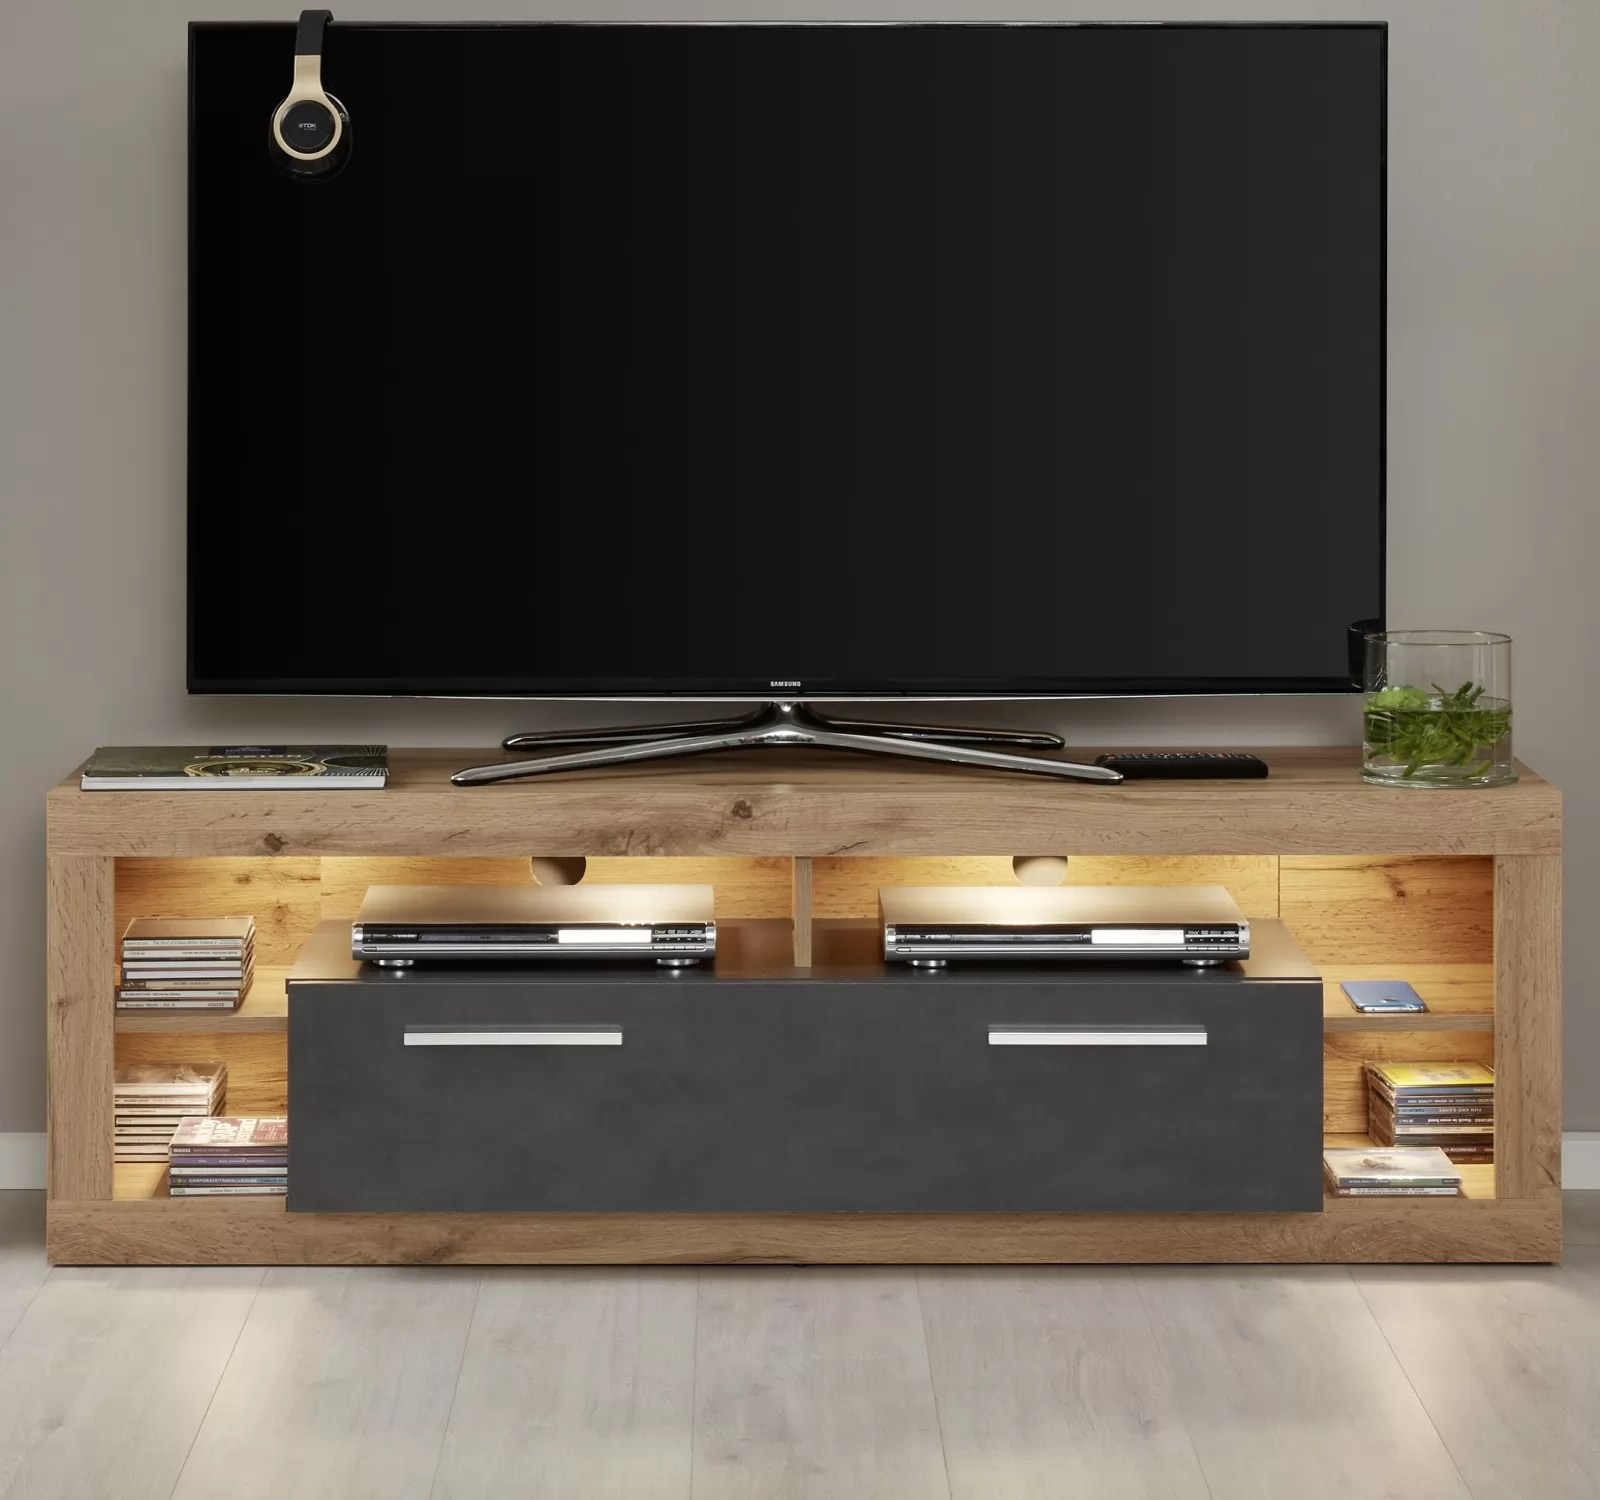 Tv Lowboard Anthrazit Tv Lowboard Rock In Matera Anthrazit Und Wotan Eiche Tv Unterteil 150 X 48 Cm